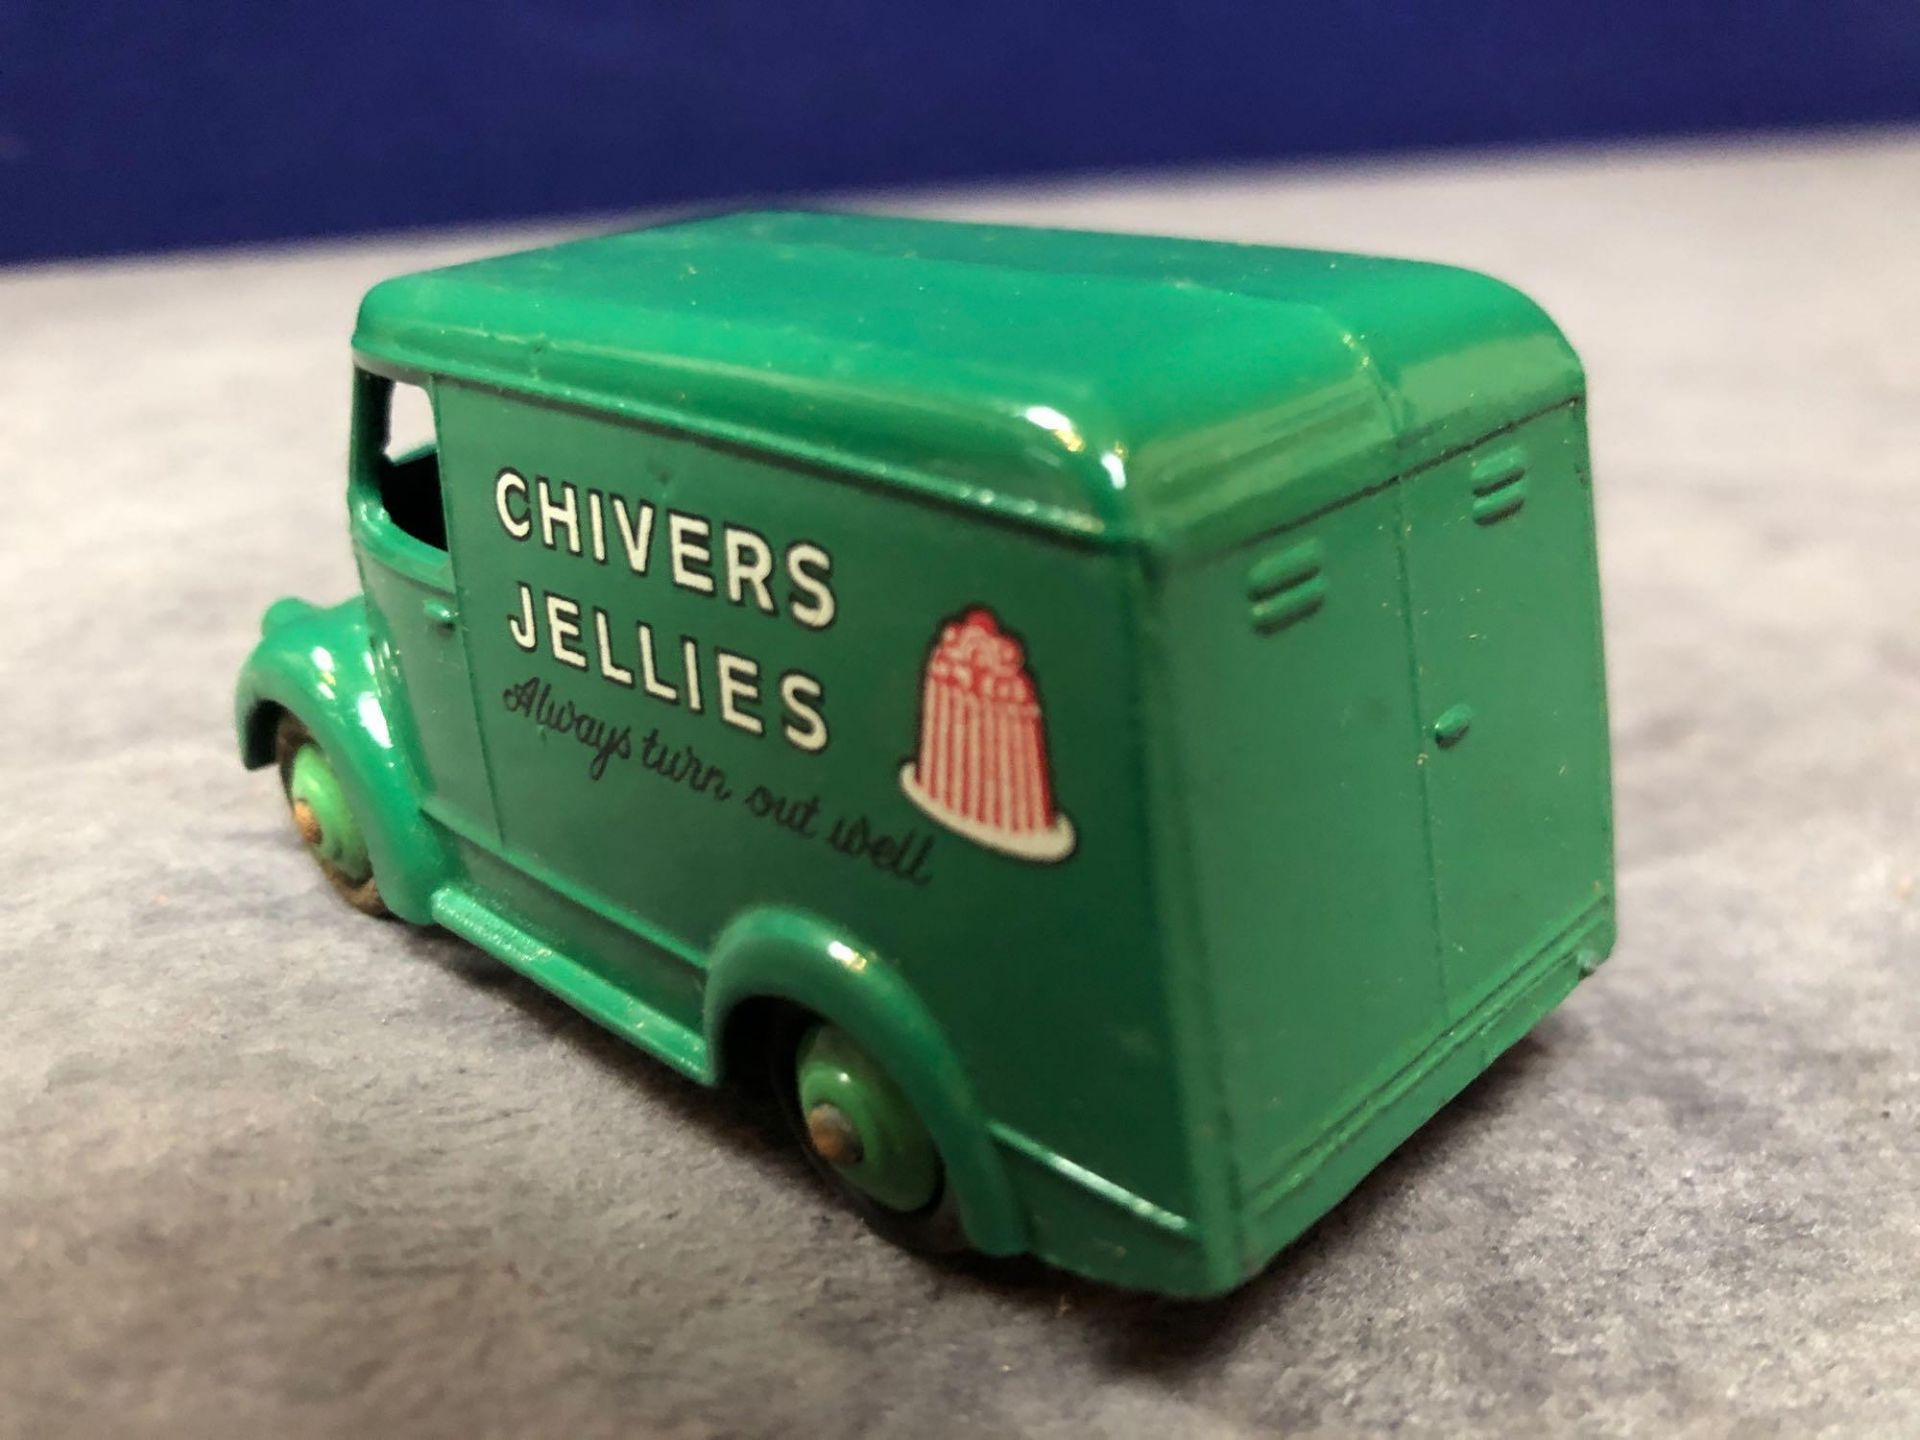 Dinky #452 Trojan 15cwt Van (Chivers) Green Model Is Mint Has A Slight Mark On Roof In A Solid - Image 3 of 4